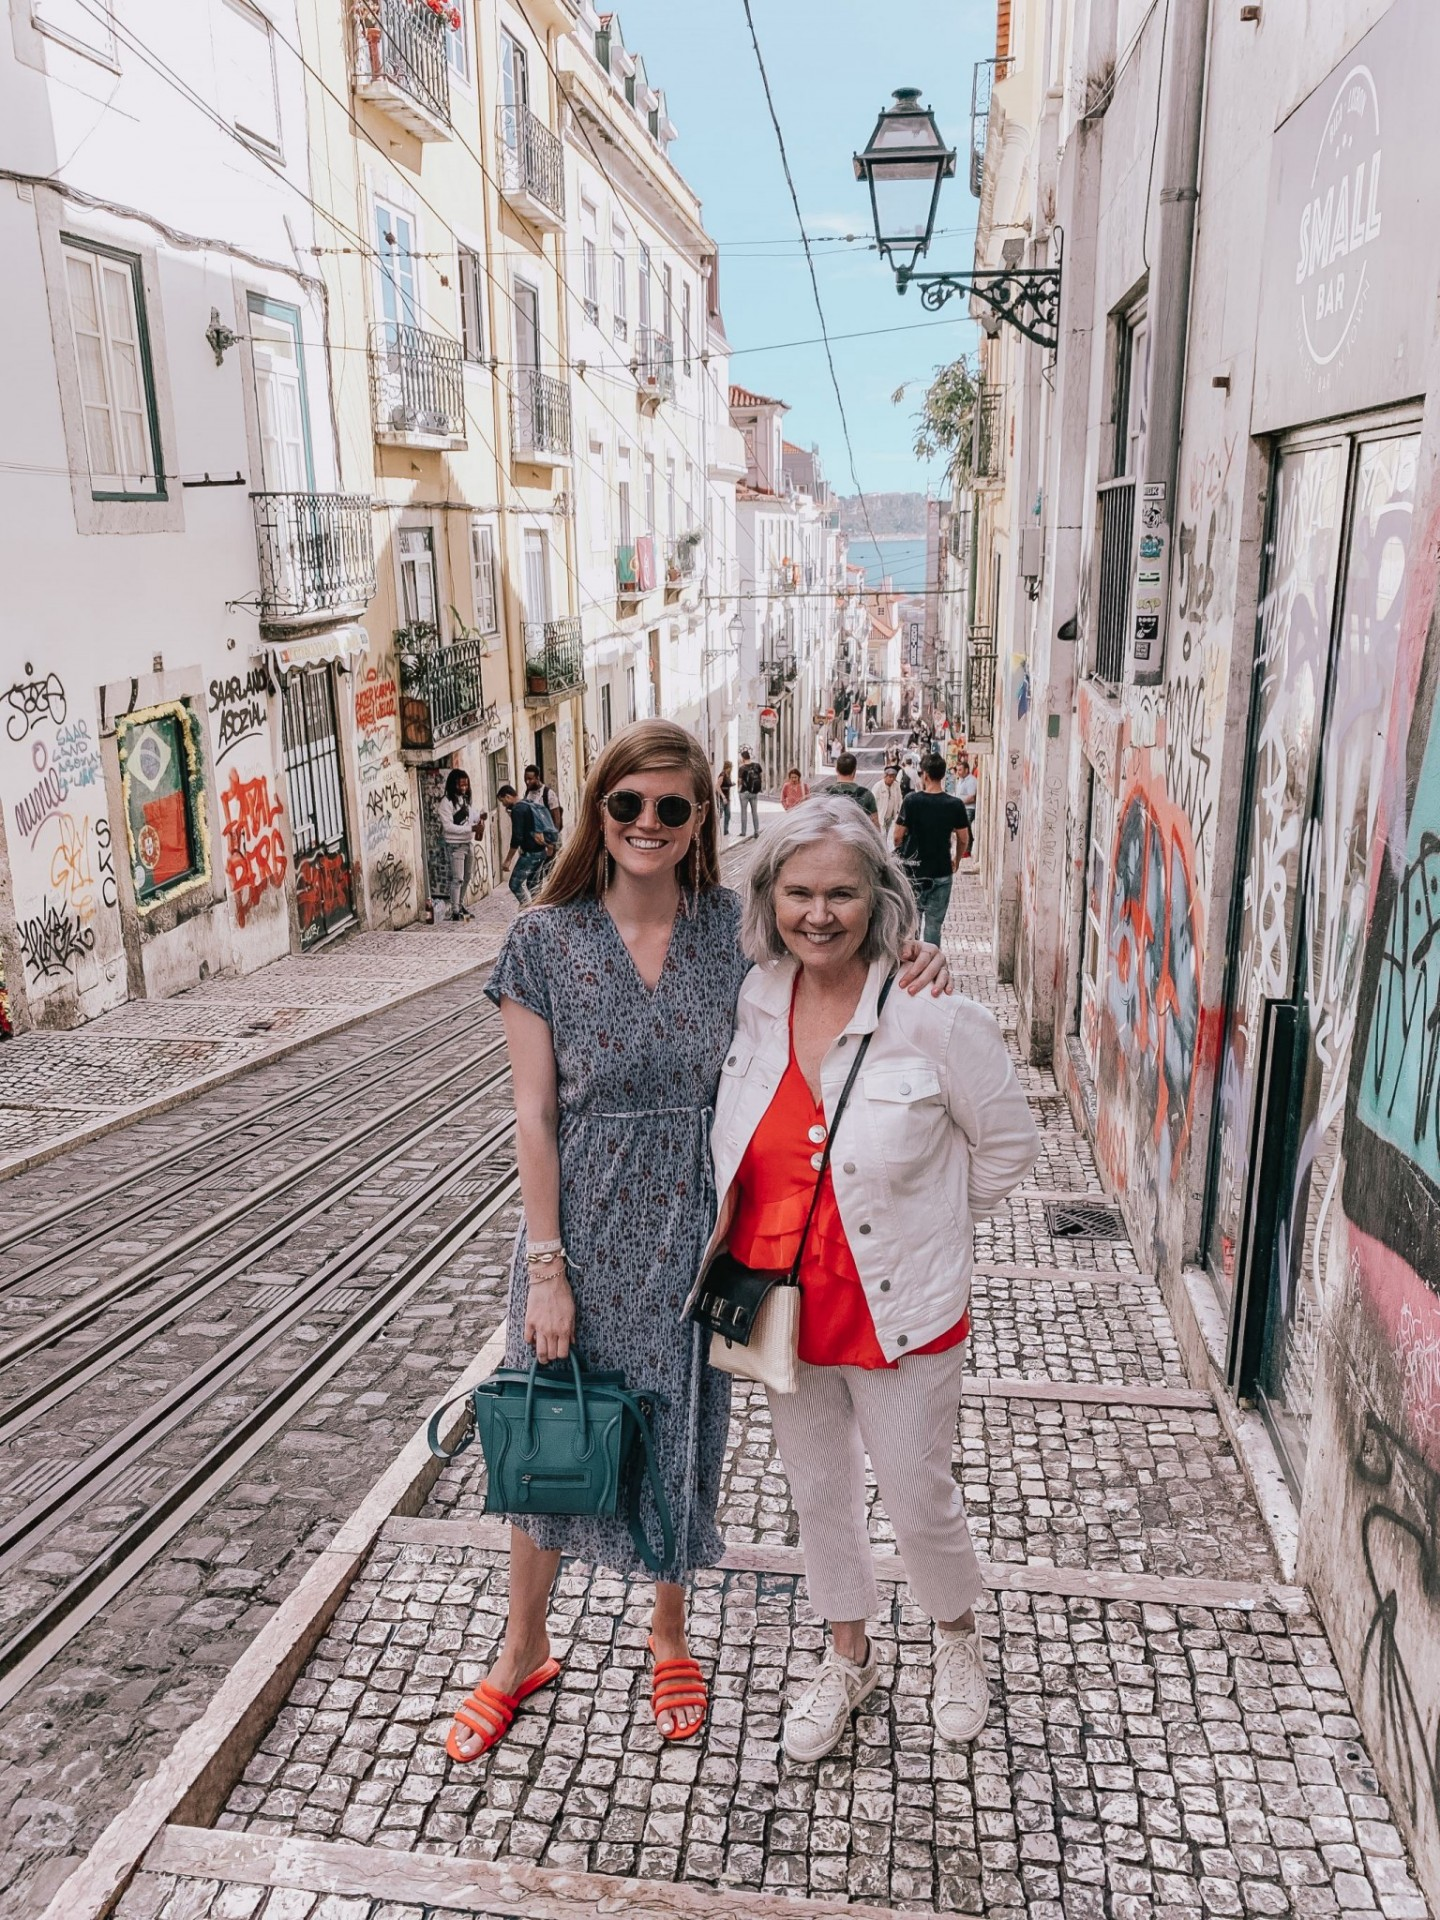 Lifestyle blogger Mollie Moore shares a Lisbon travel guide | Visiting Portugal: The Ultimate Lisbon Travel Guide & the Best Things to Do by popular London travel blogger, Mollie Moore: image of two women standing in an alley with lots of graffiti in Lisbon, Portugal.